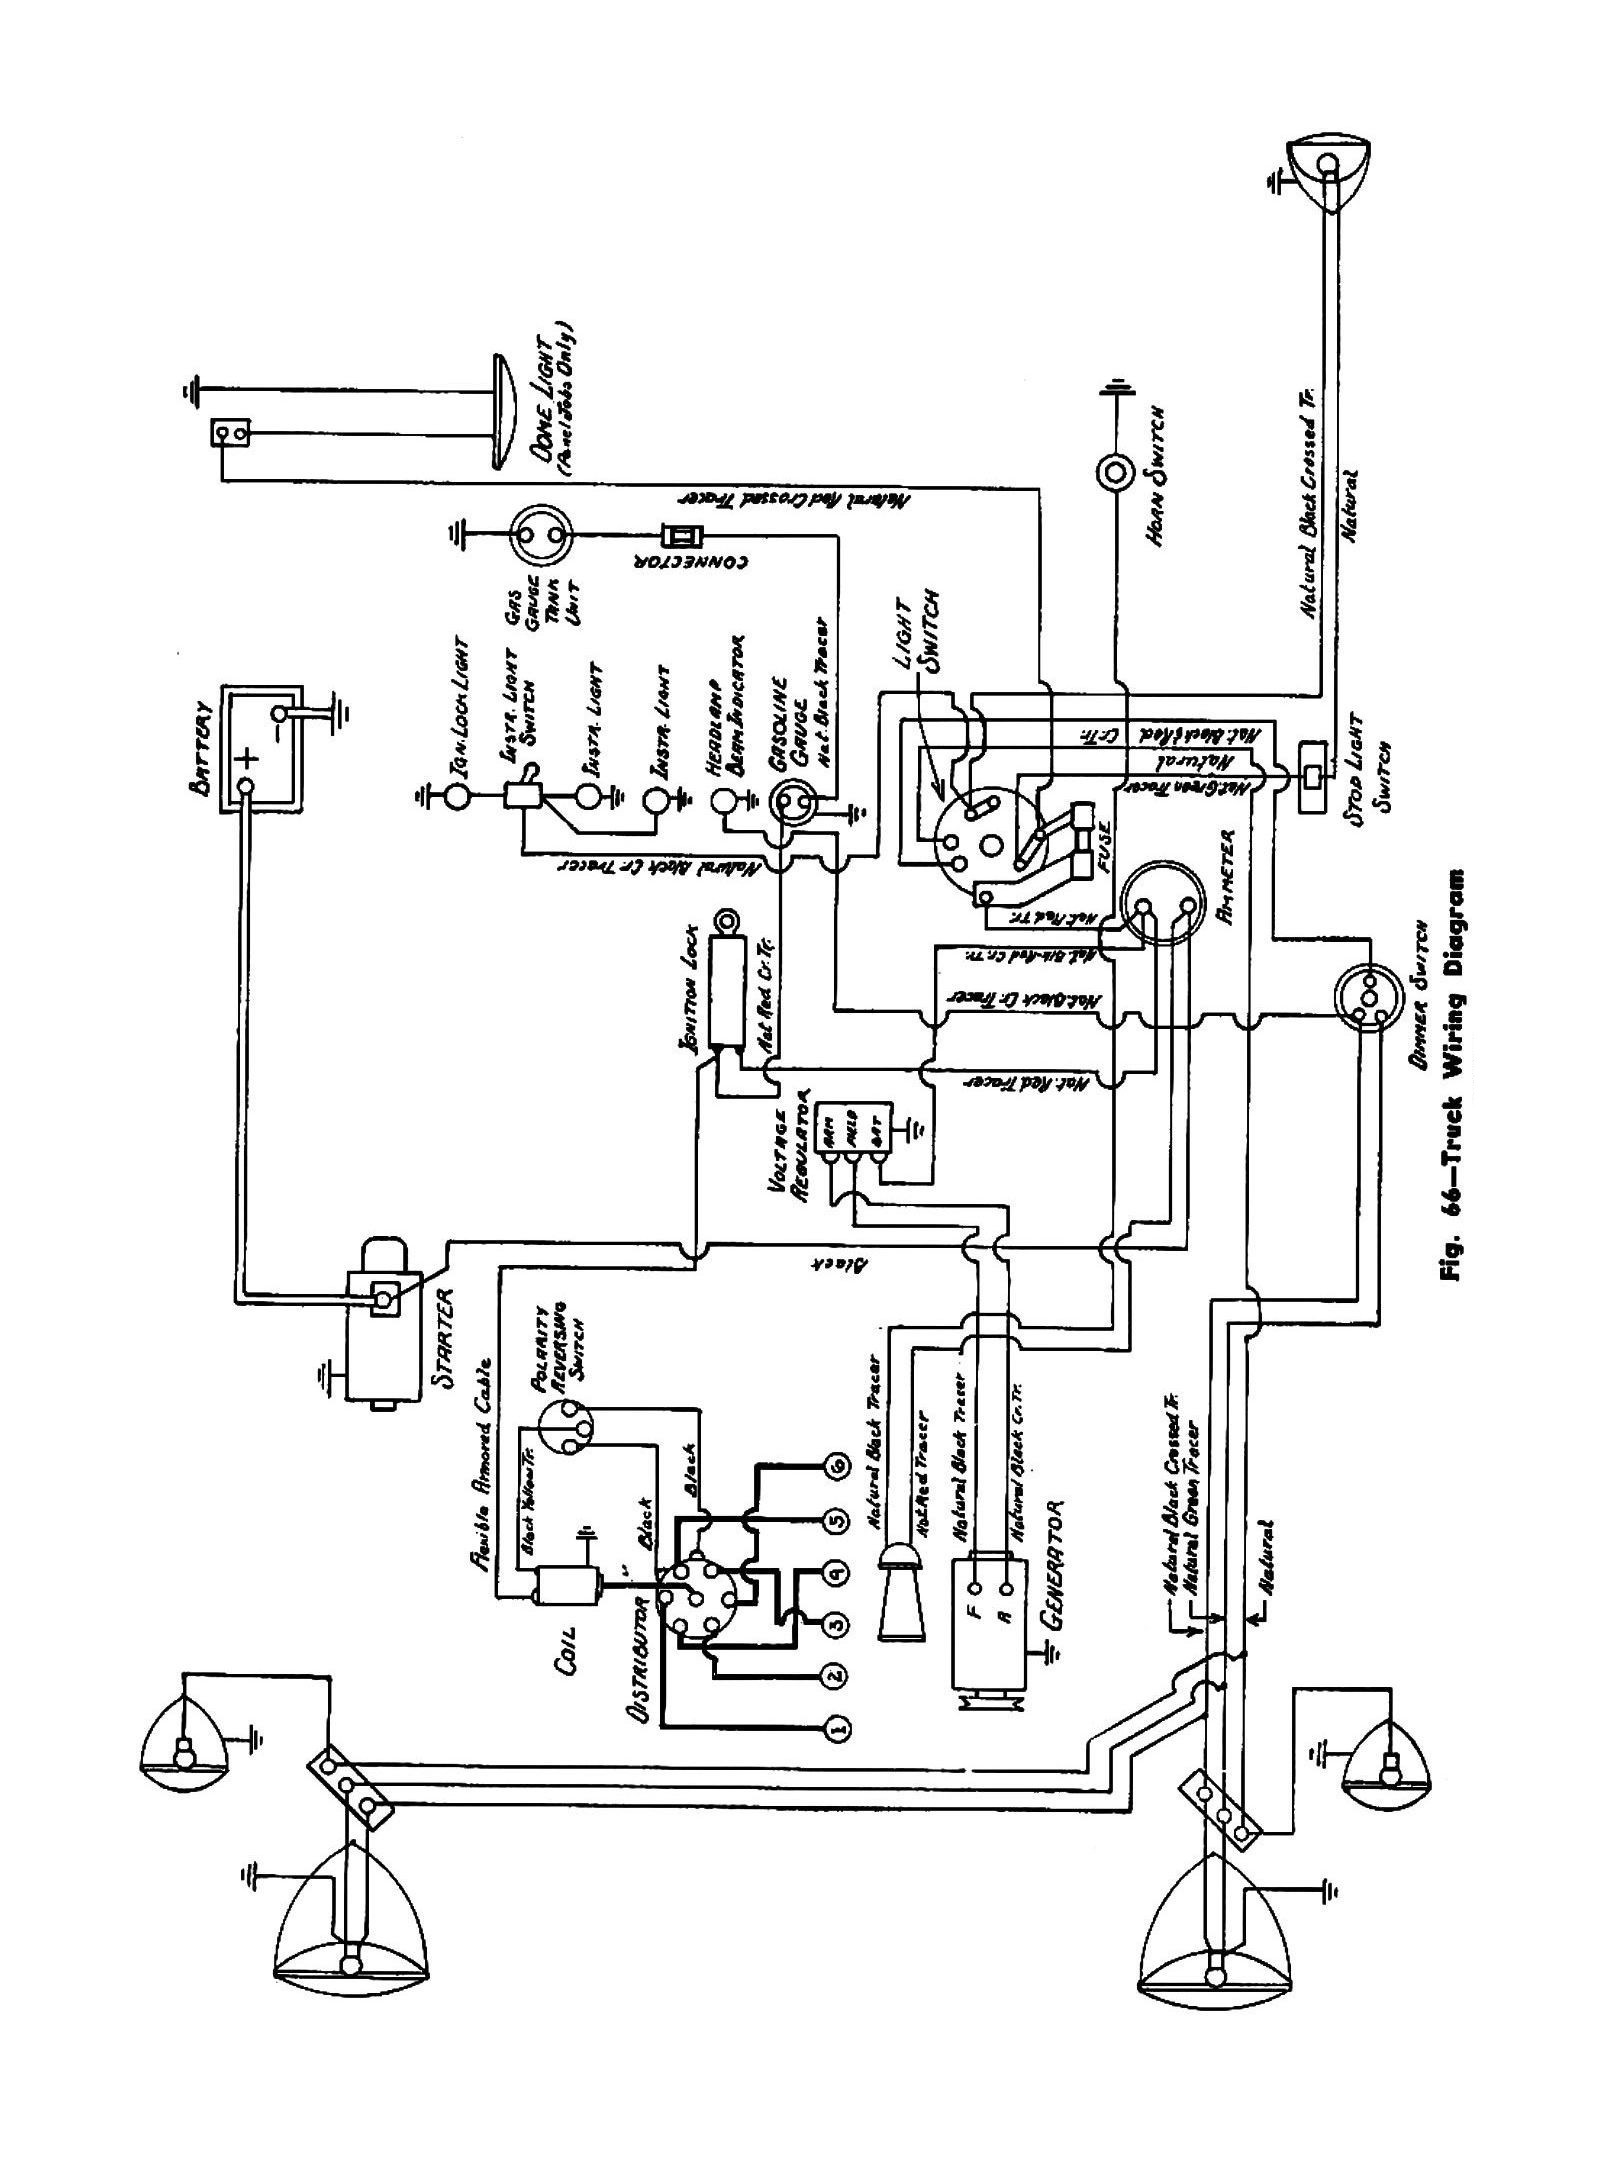 216 Chevy Engine Diagram Chevy Wiring Diagrams Of 216 Chevy Engine Diagram